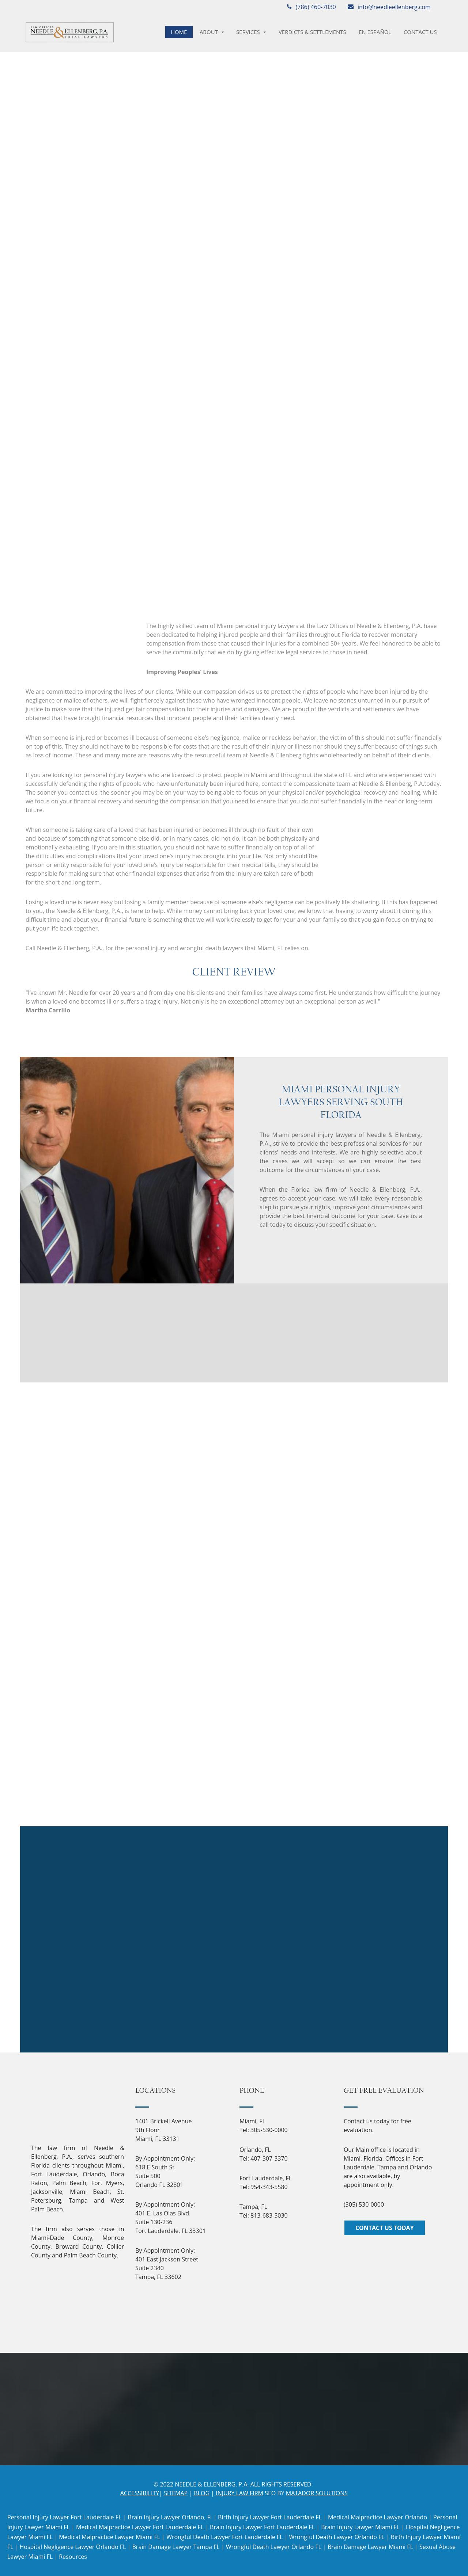 Needle & Ellenberg, P.A. - Miami FL Lawyers